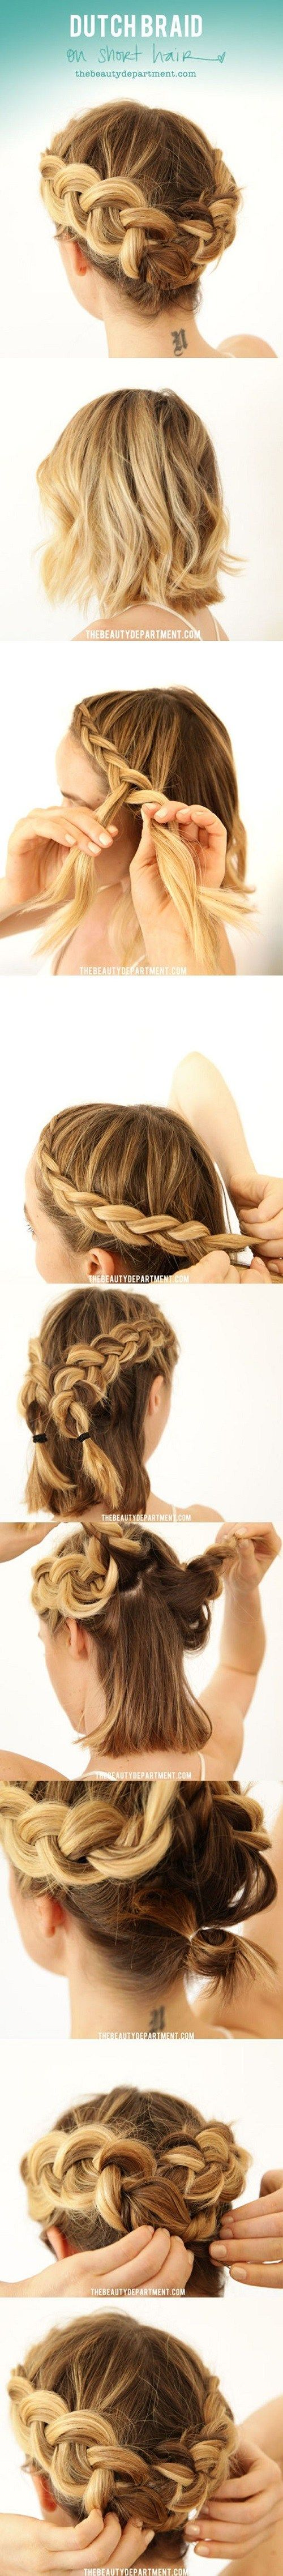 Great Styling Ideas for Short Hairstyles 2017 Bobby_Pins_Make_Crown_Braid_2-1